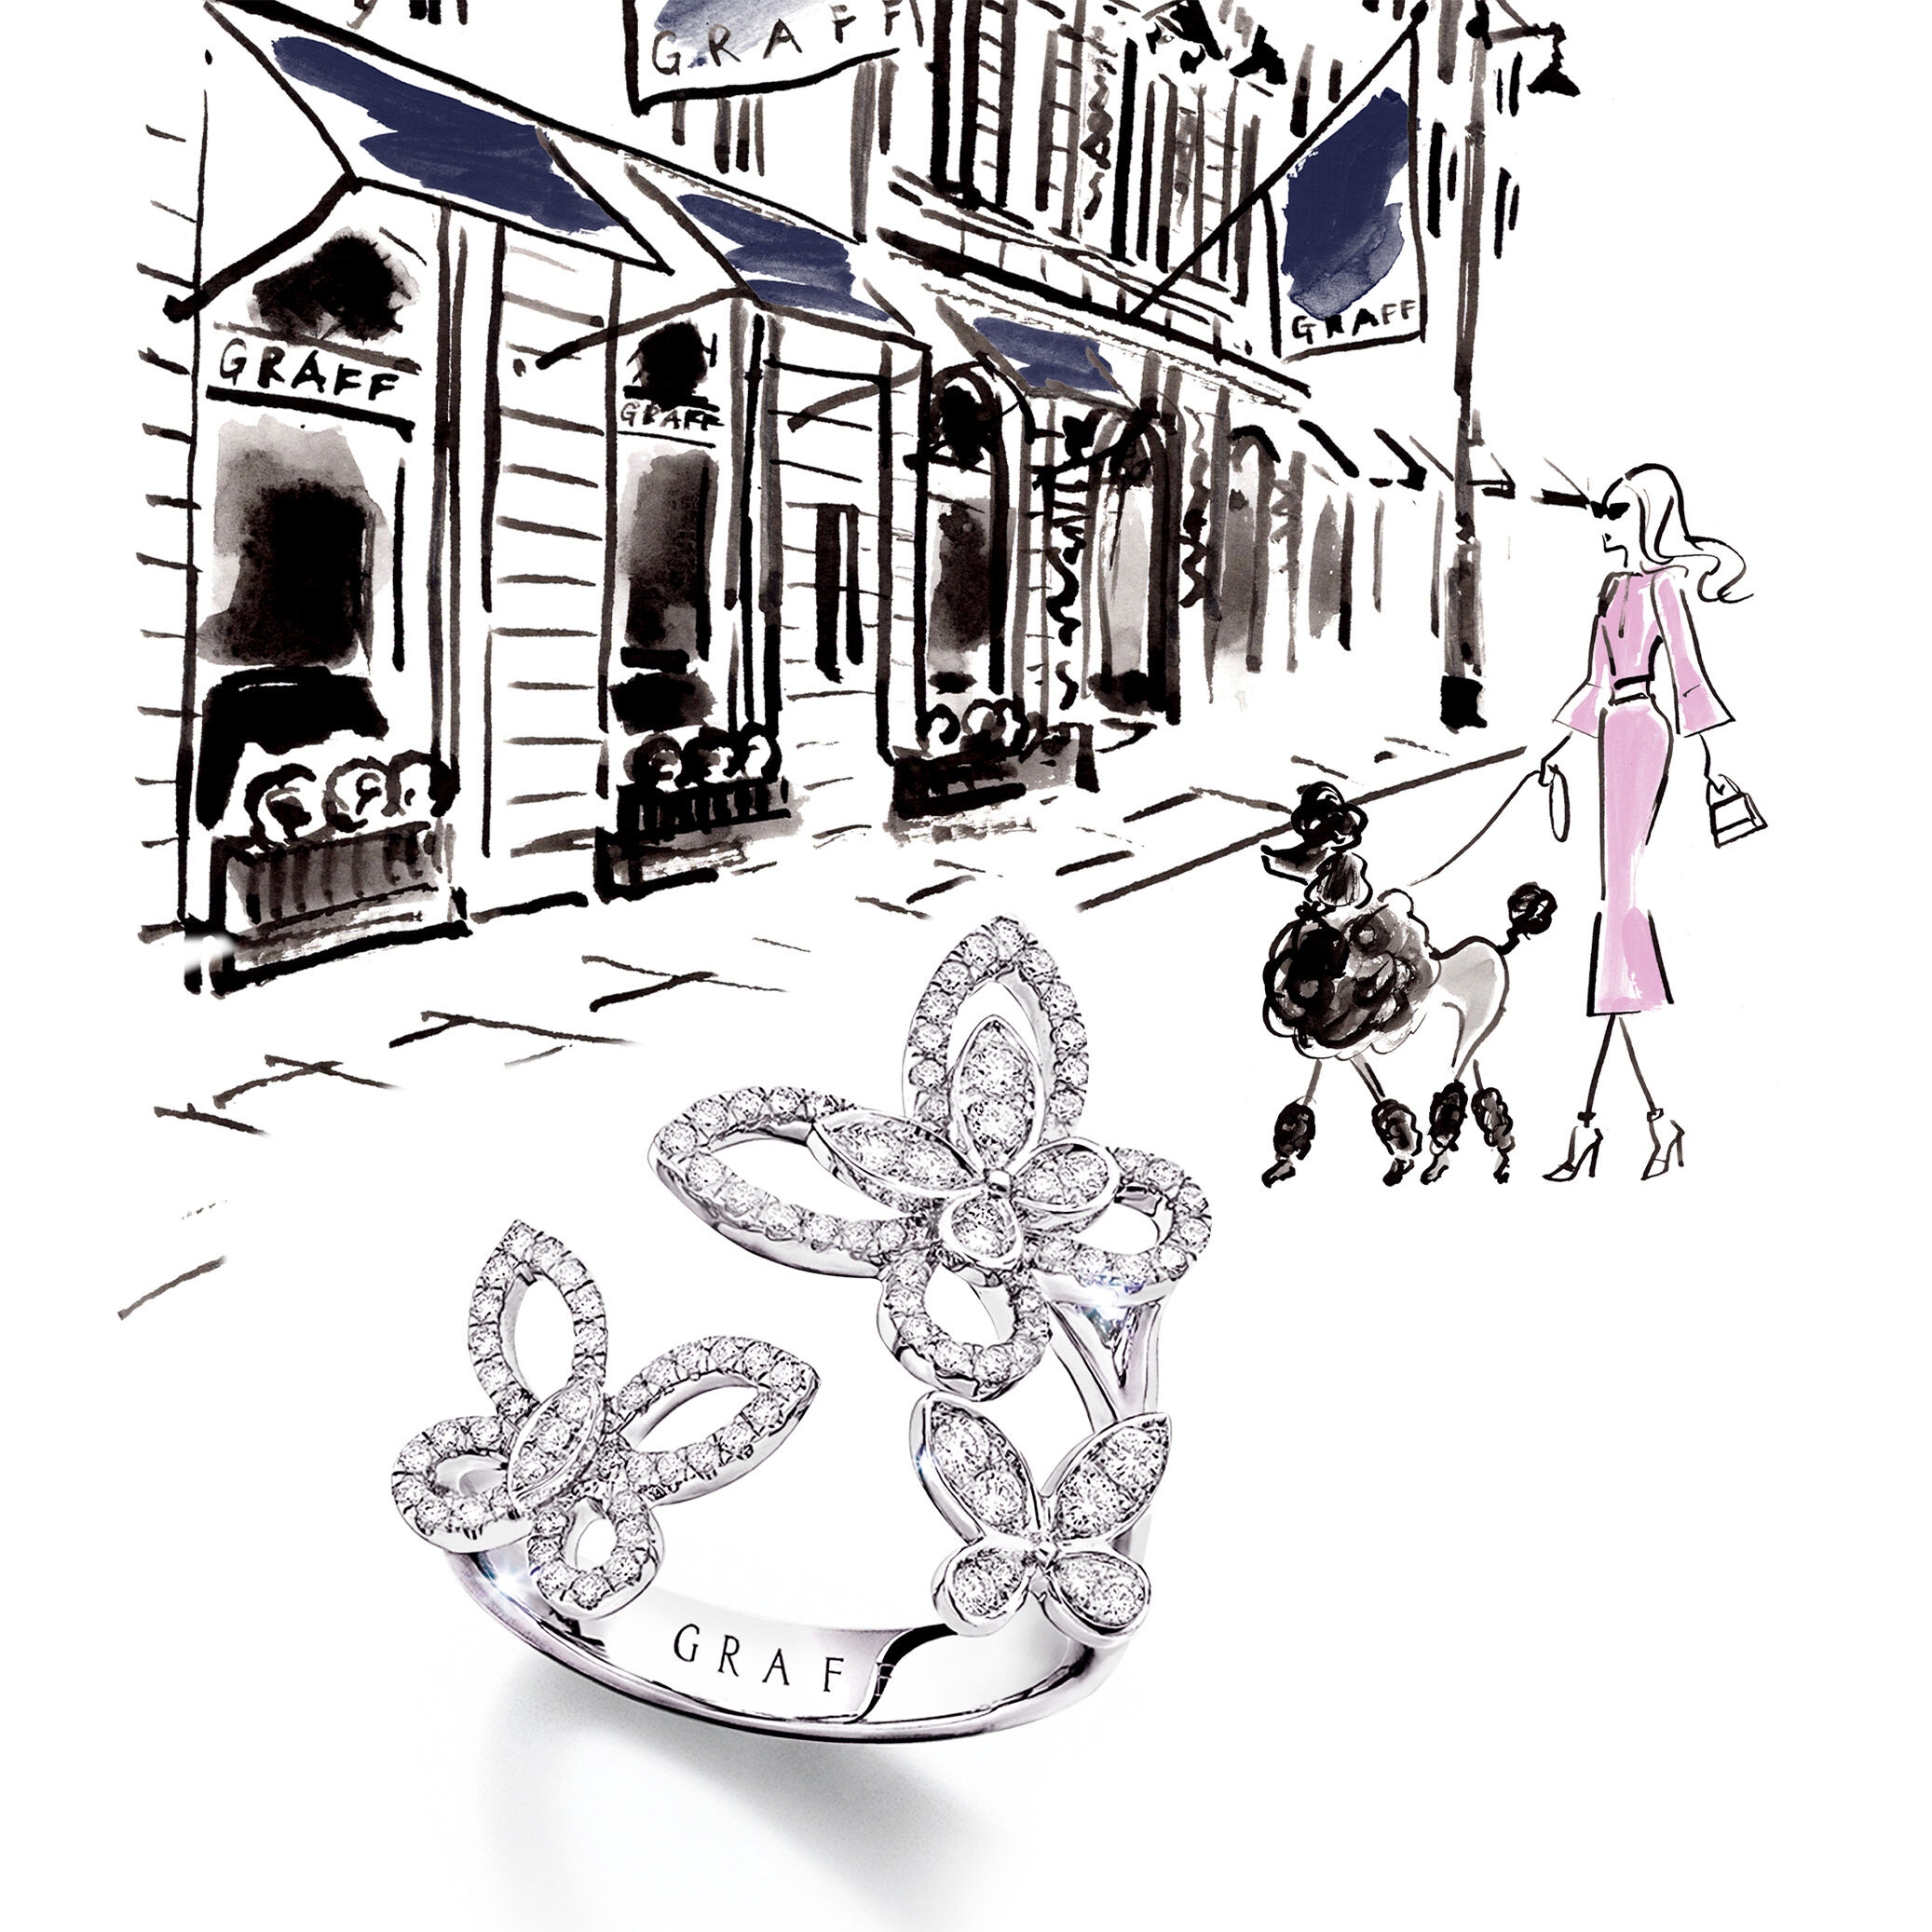 Graff Triple Butterfly Silhouette ring on an illustrated background